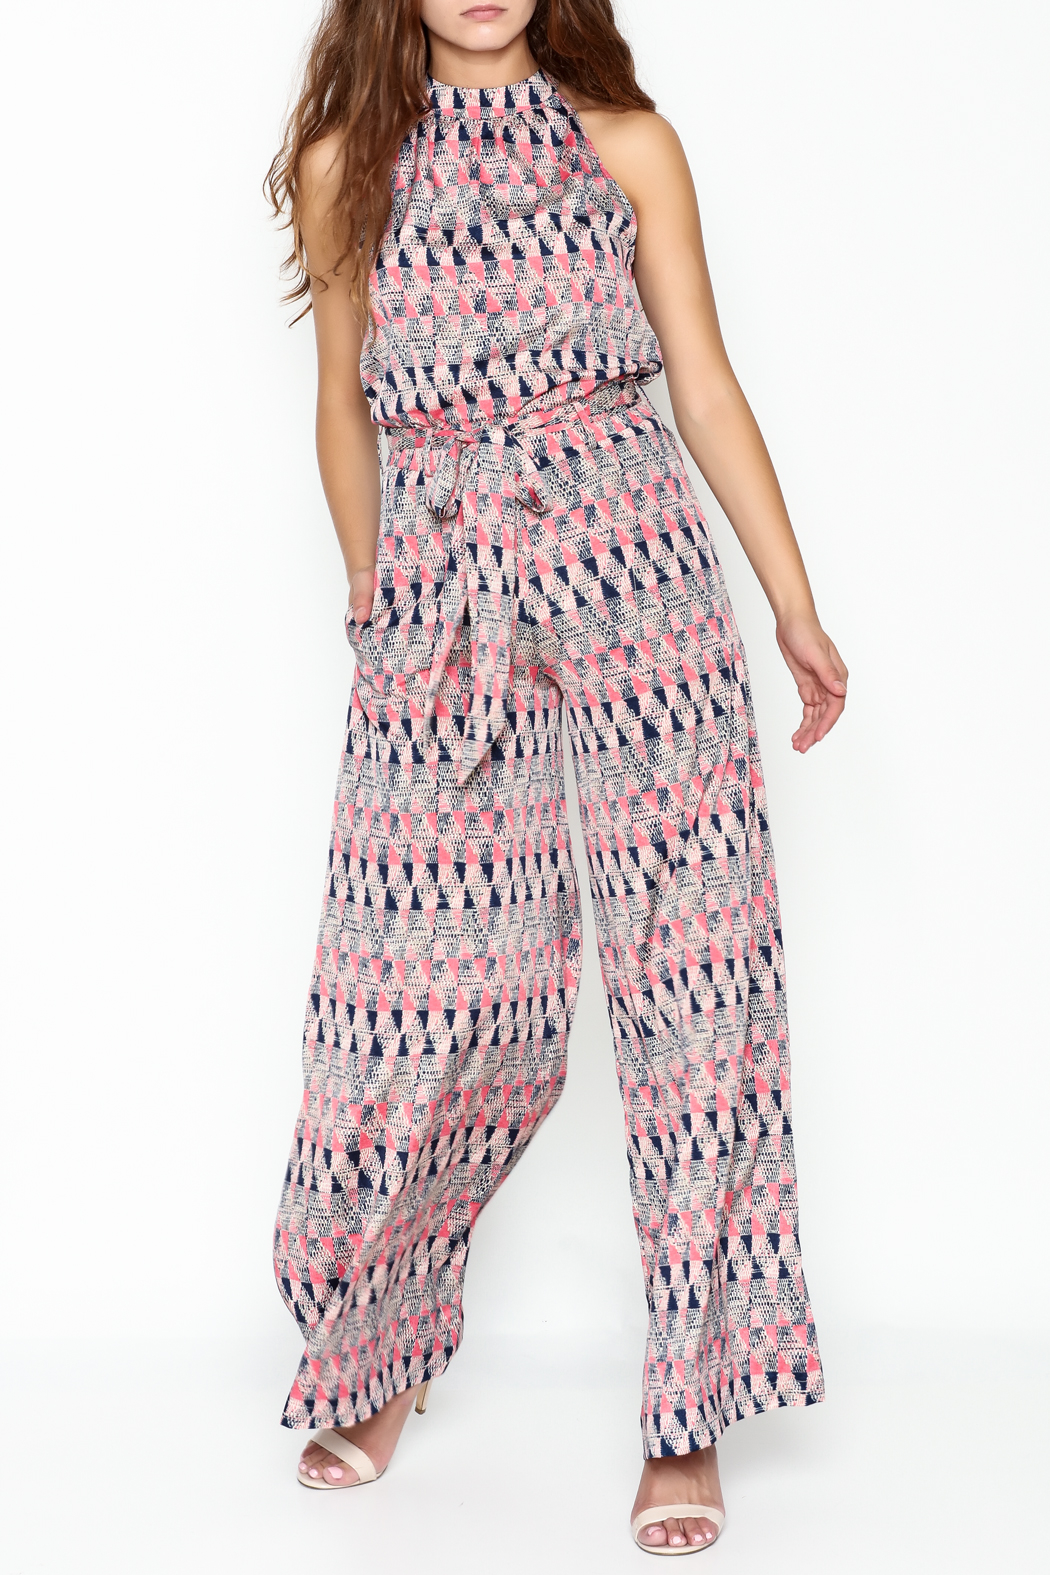 Julie Dorst Chelsea Palazzo Pants - Side Cropped Image